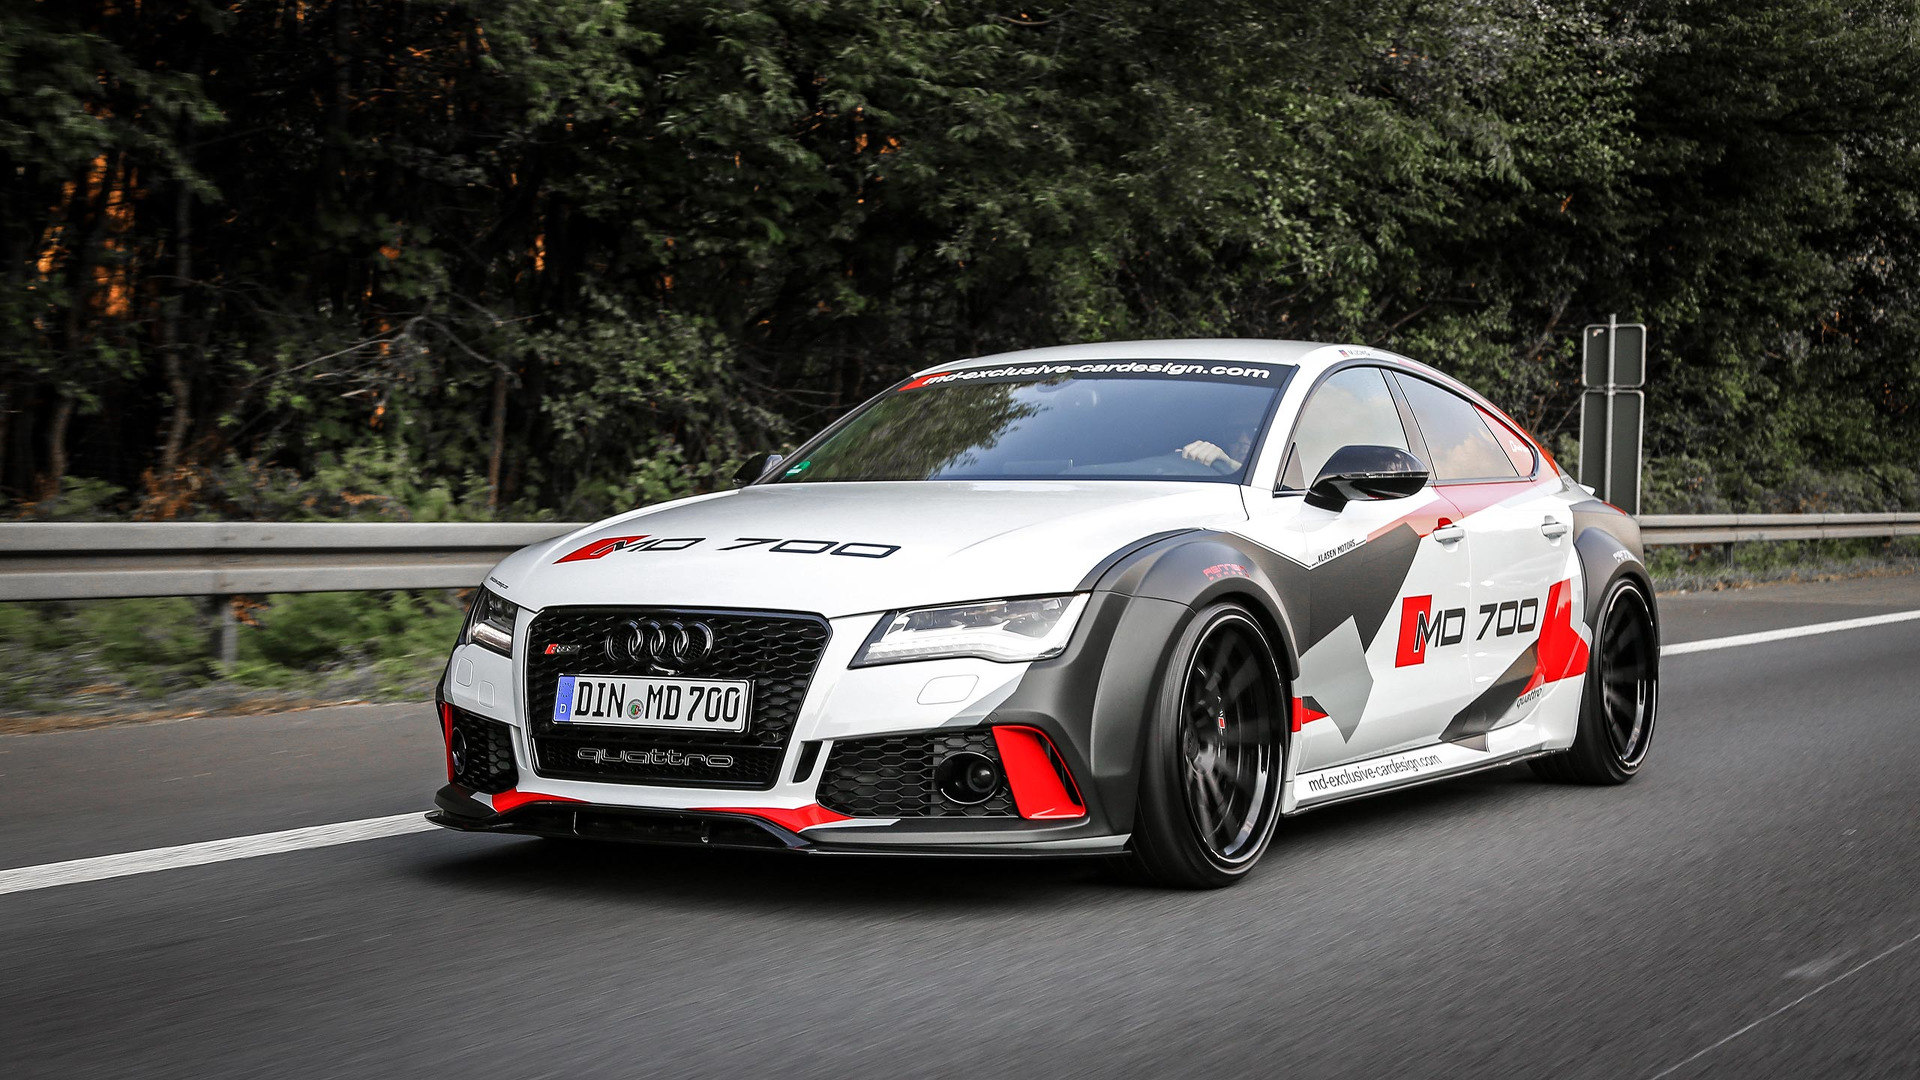 690 hp Audi S7 widebody puts the RS7 to shame 1920x1080